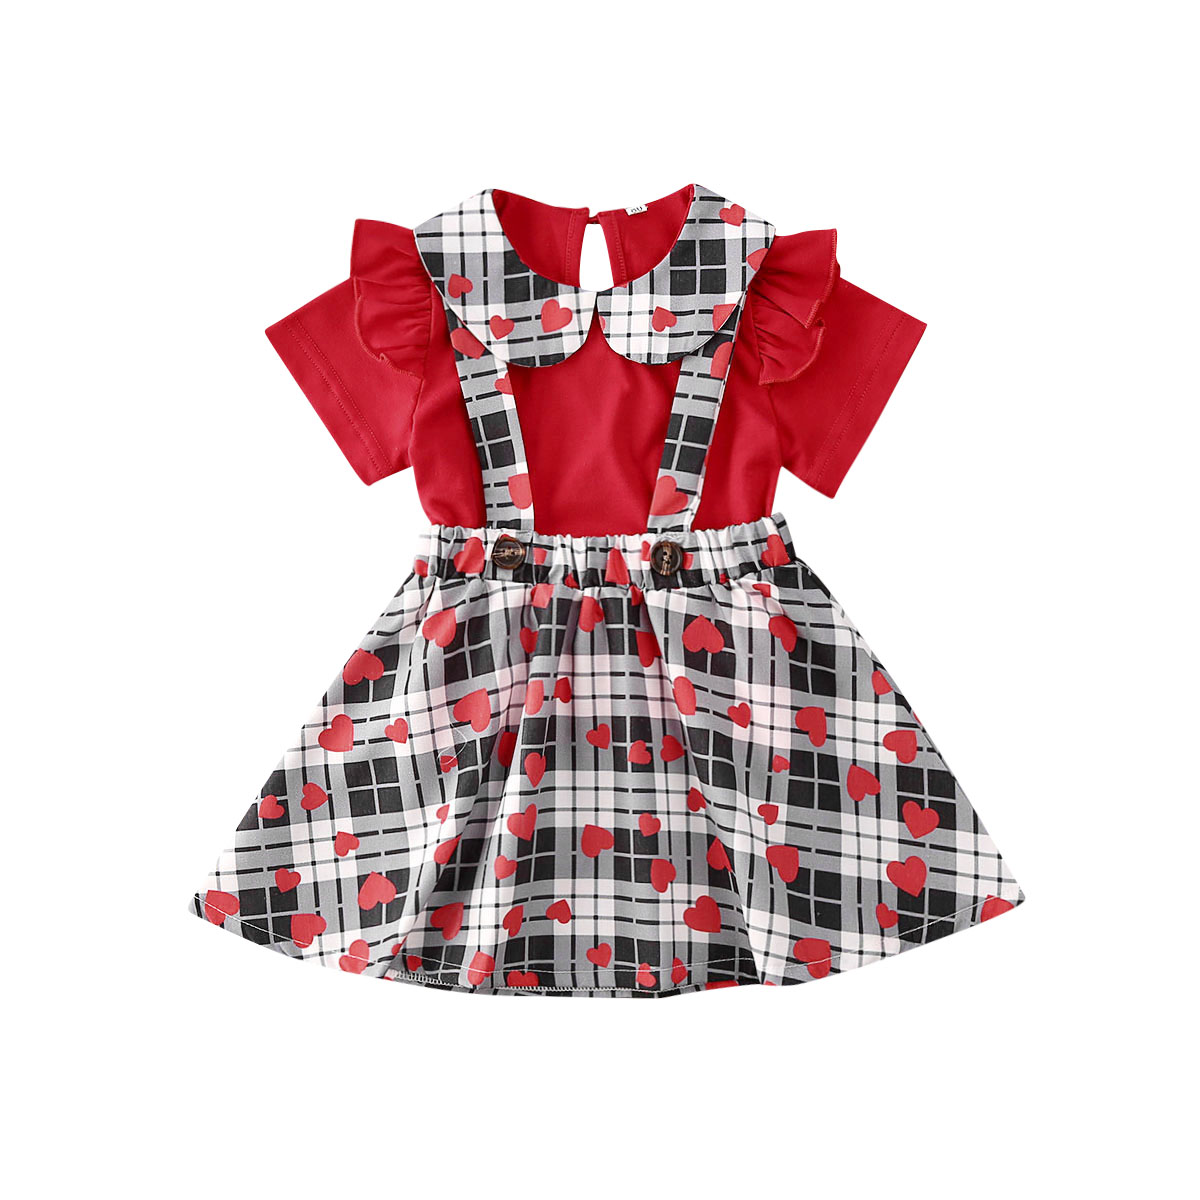 Toddler Kids Baby Girl Floral Top Button Shirt Short Skirts Outfits Clothes Set